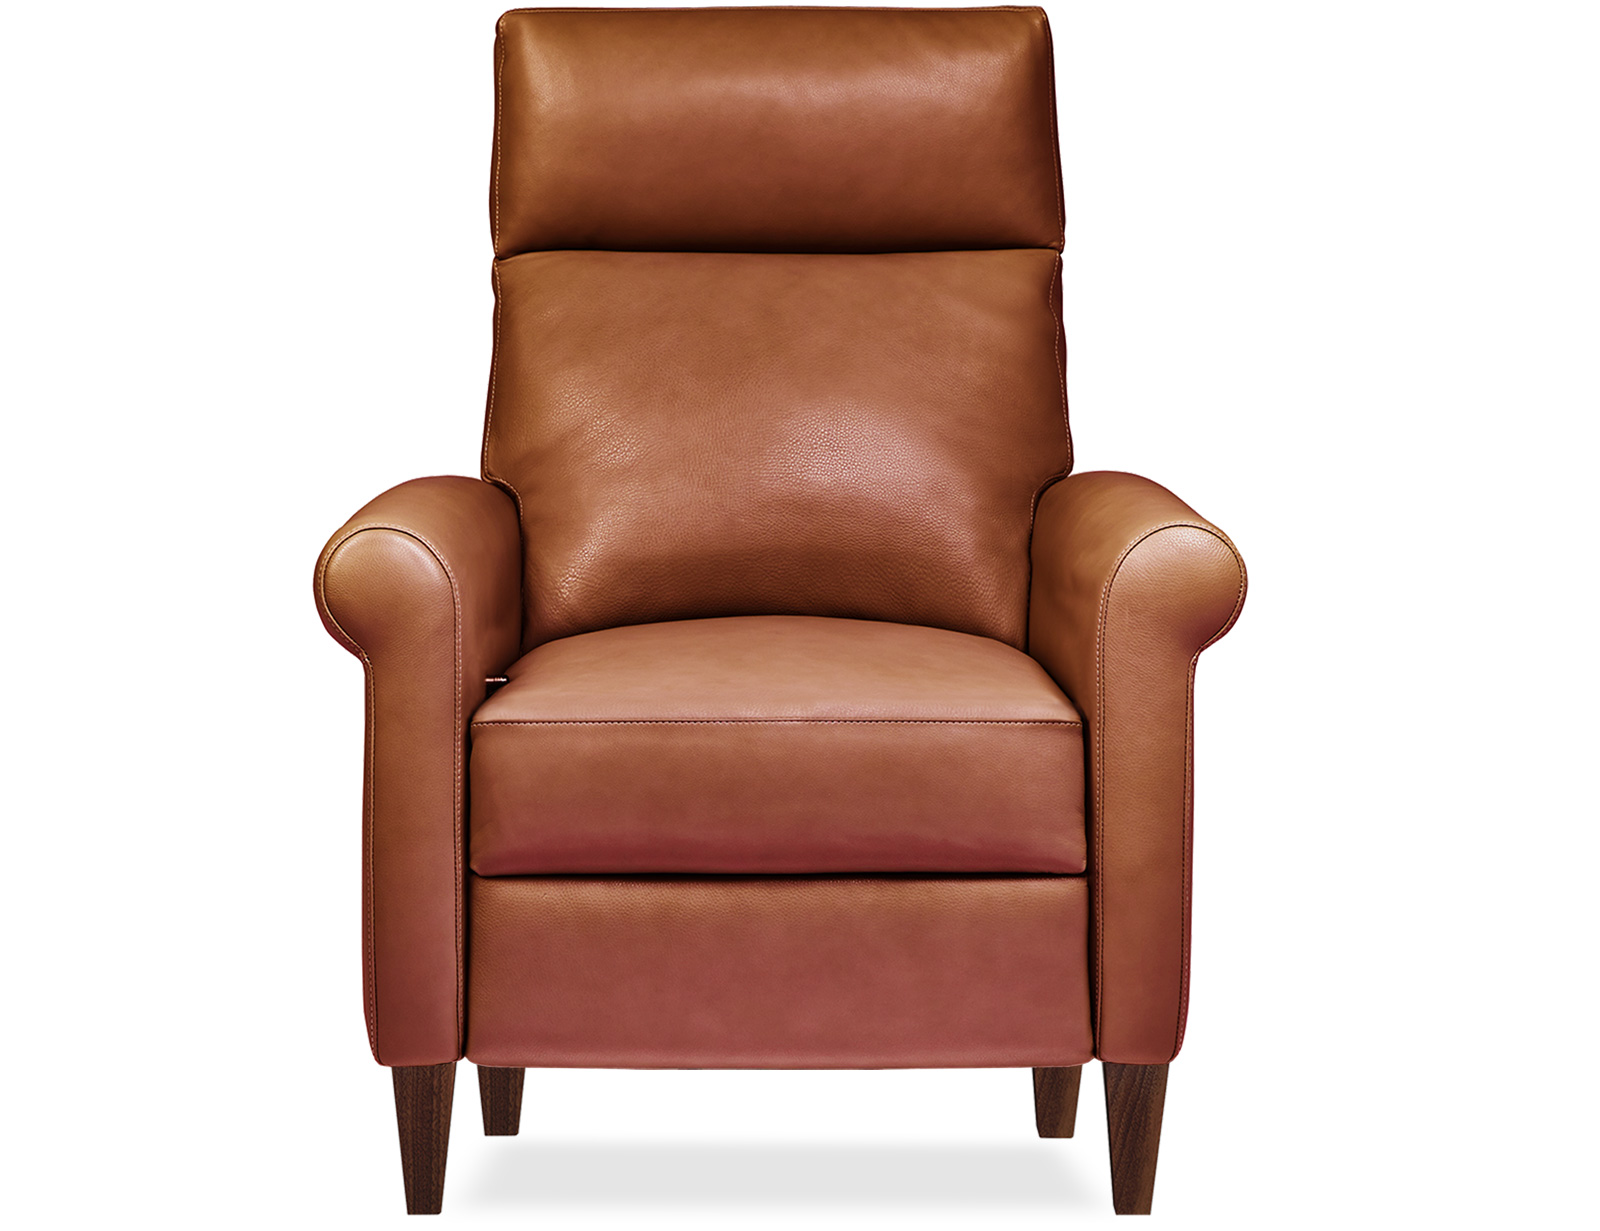 American Leather Adley Comfort Recliner--clean, simple, stylish